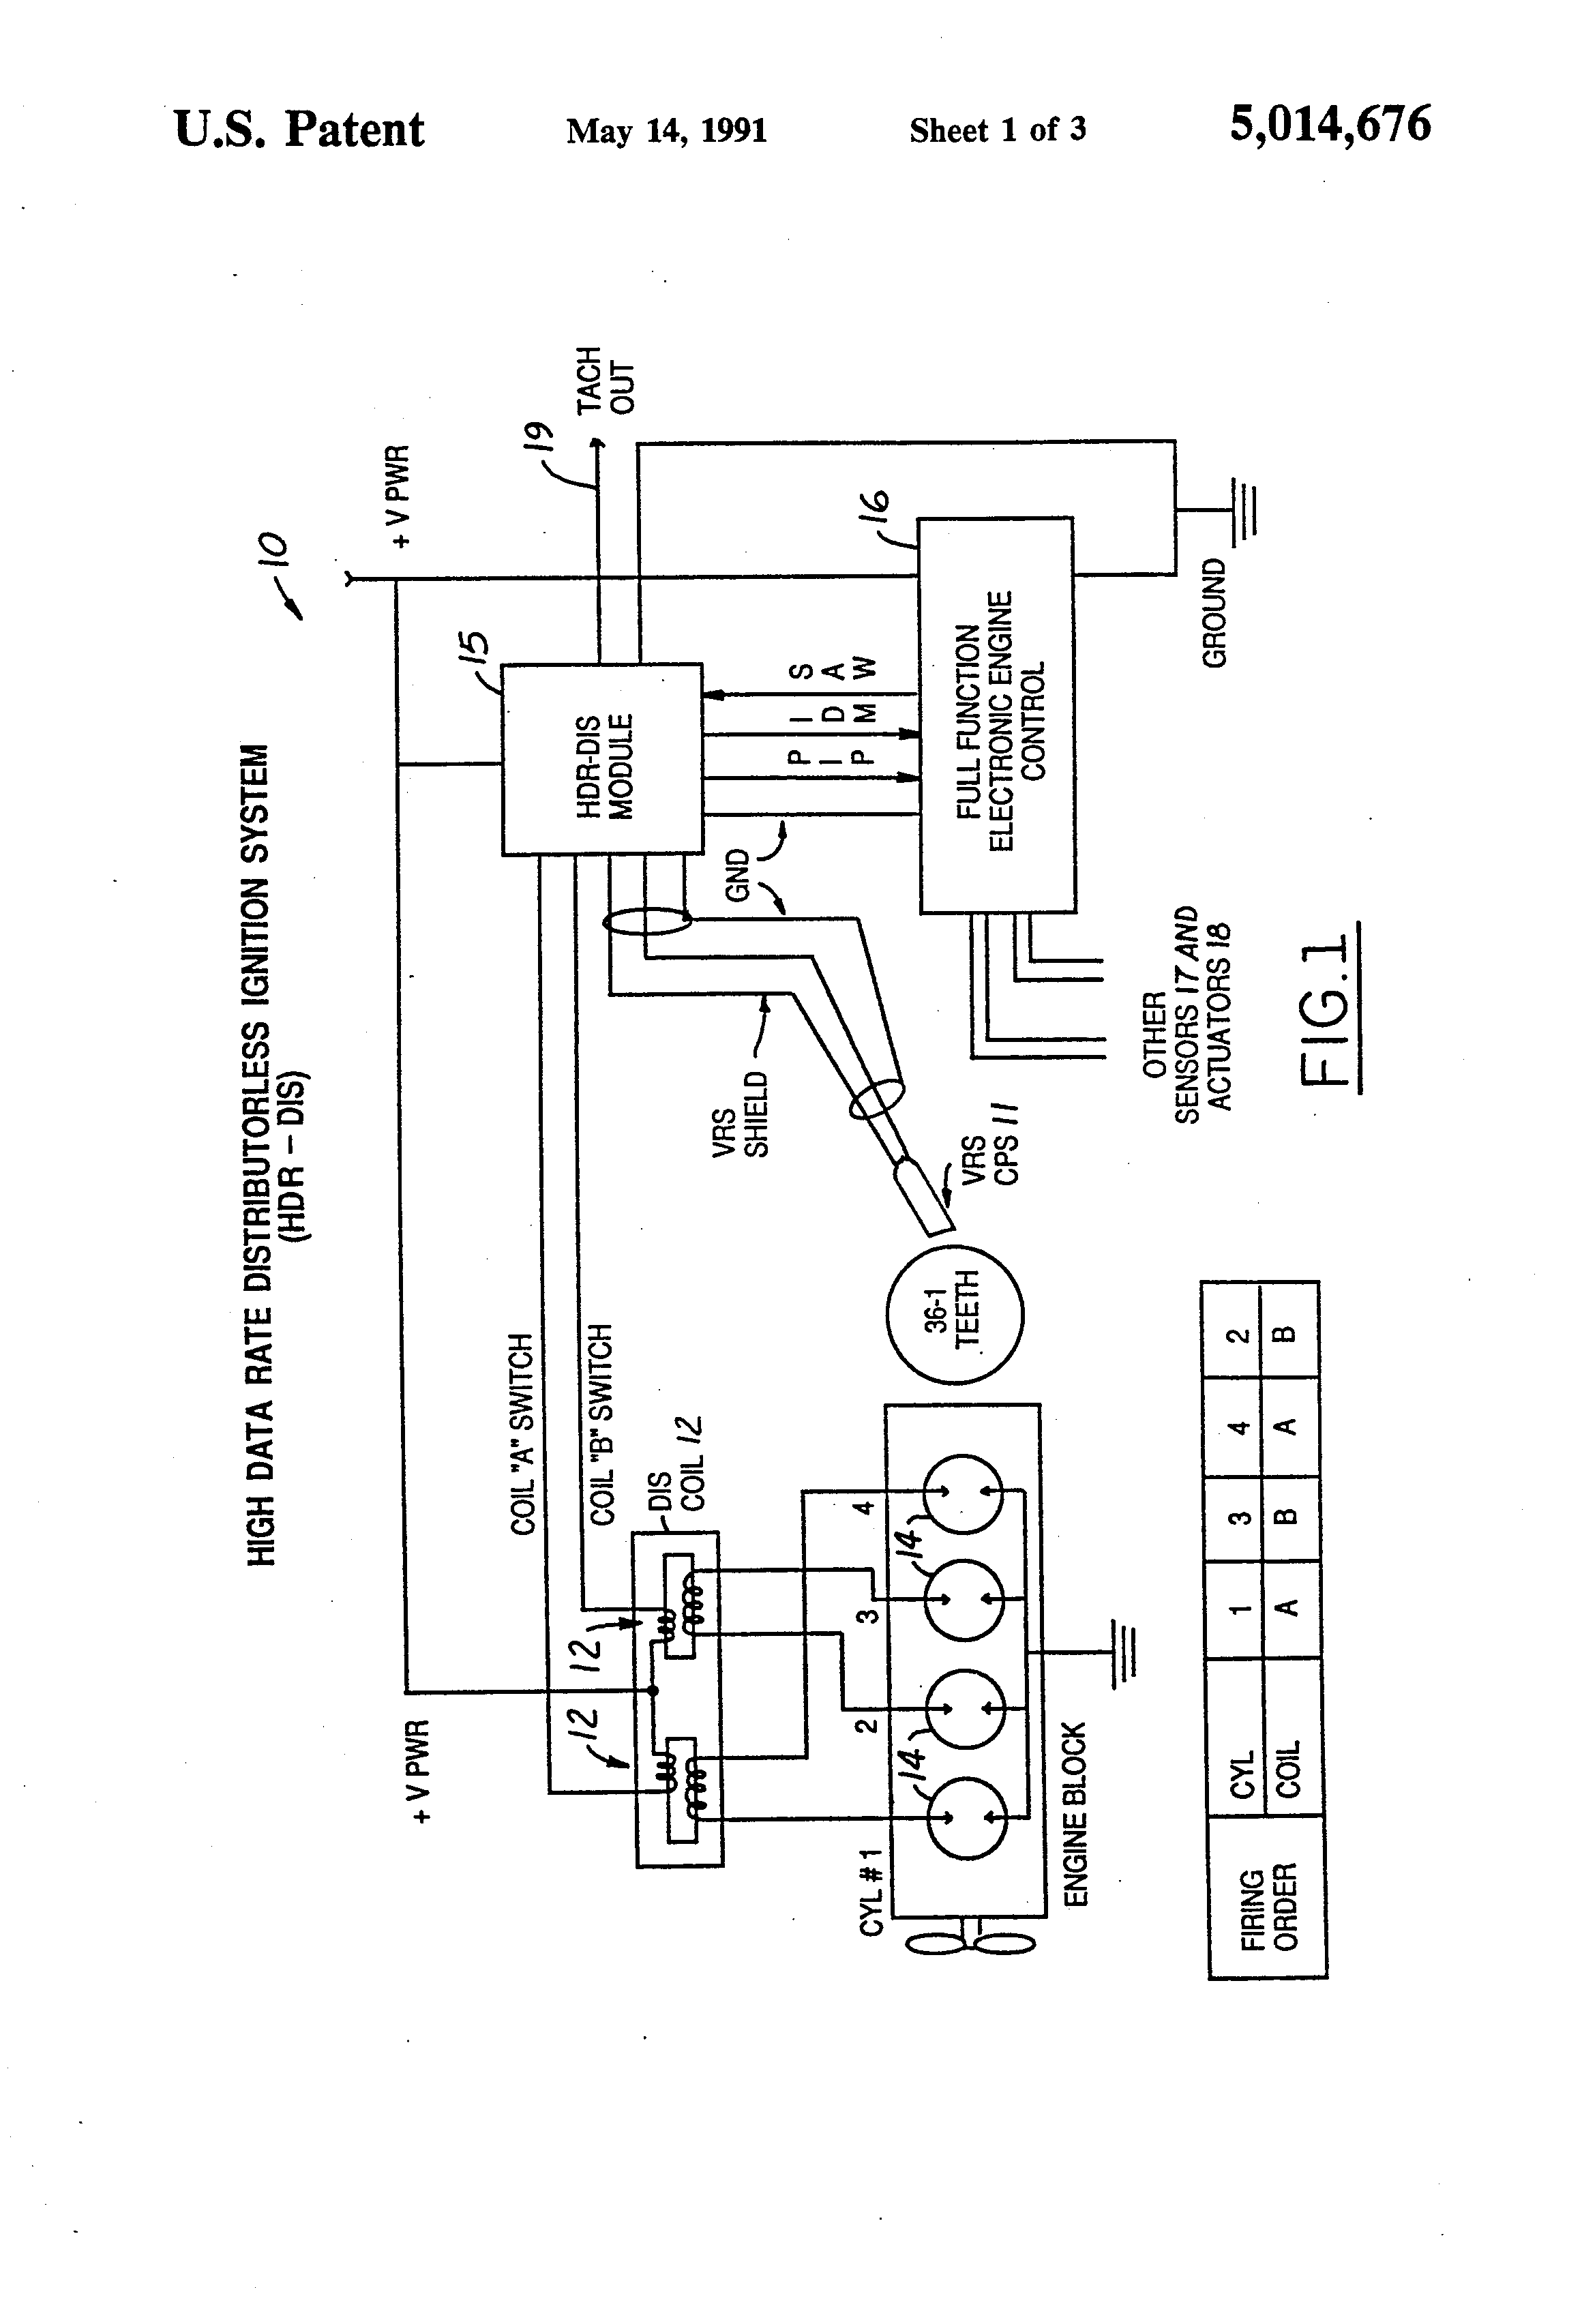 US5014676 1?resize=665%2C977 delphi dea355 stereo wiring diagram delphi stereo system, delphi international 4300 radio wiring diagram at aneh.co